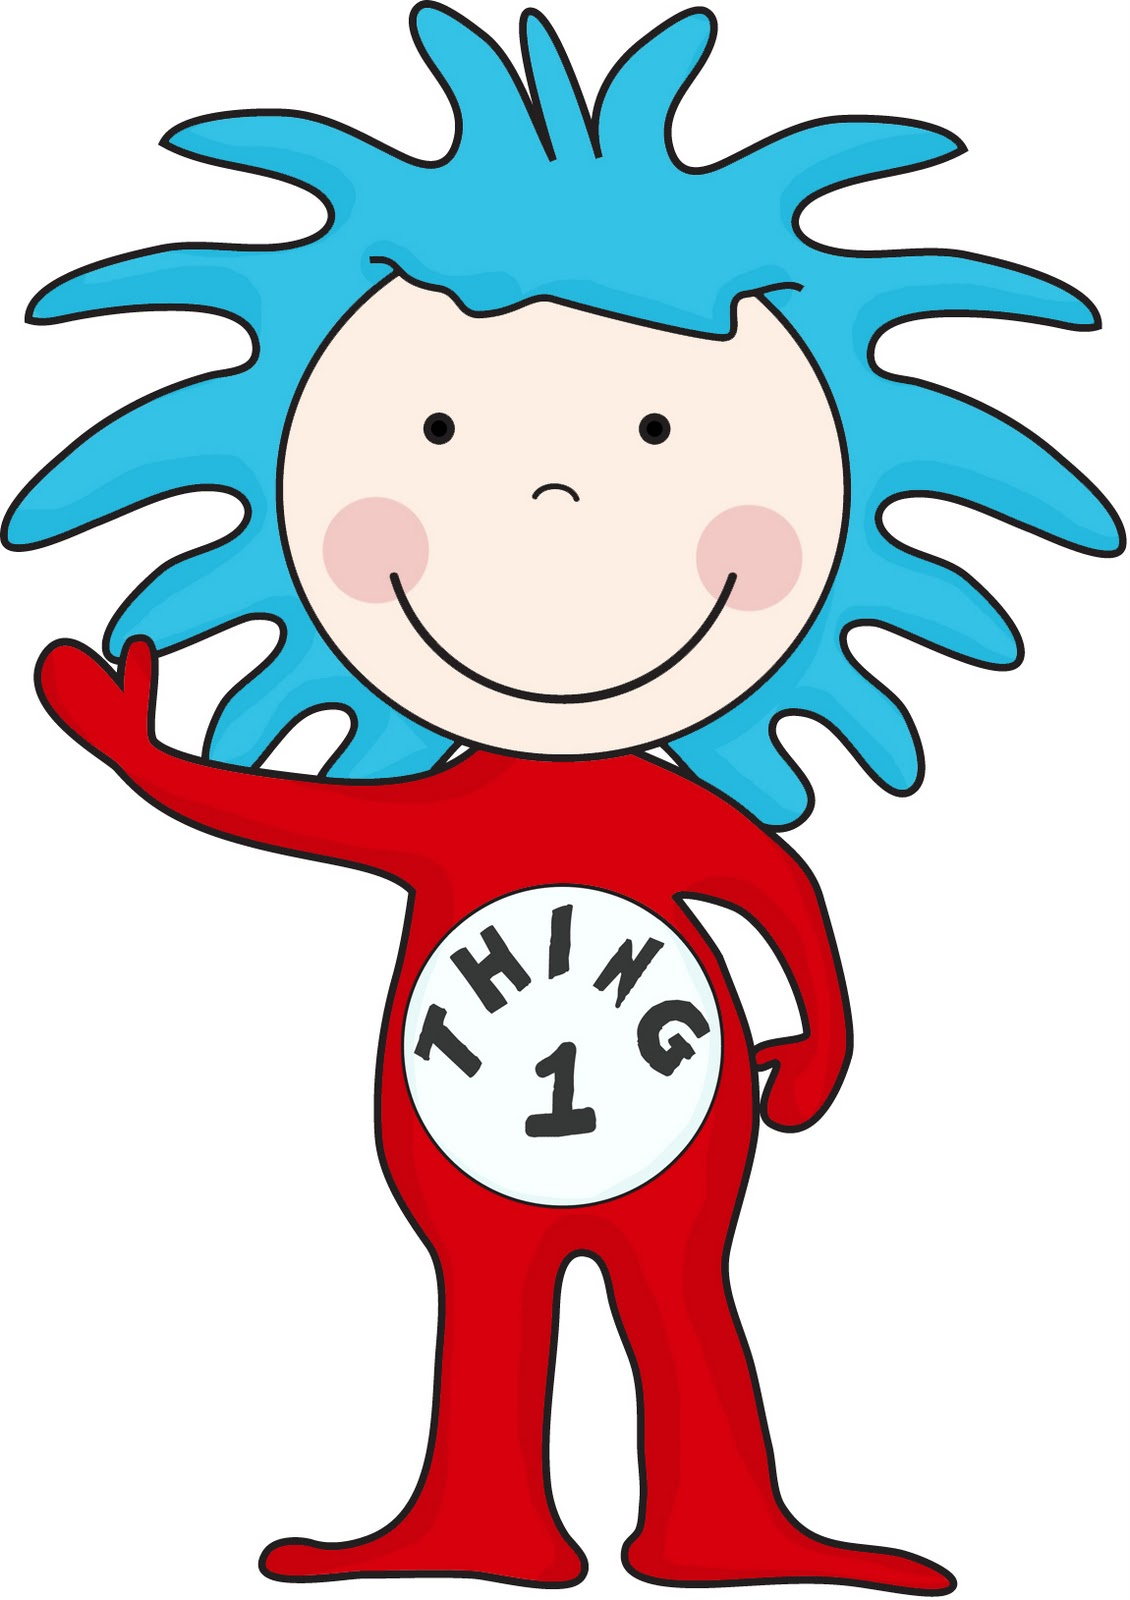 Thing 20clipart Panda Free .